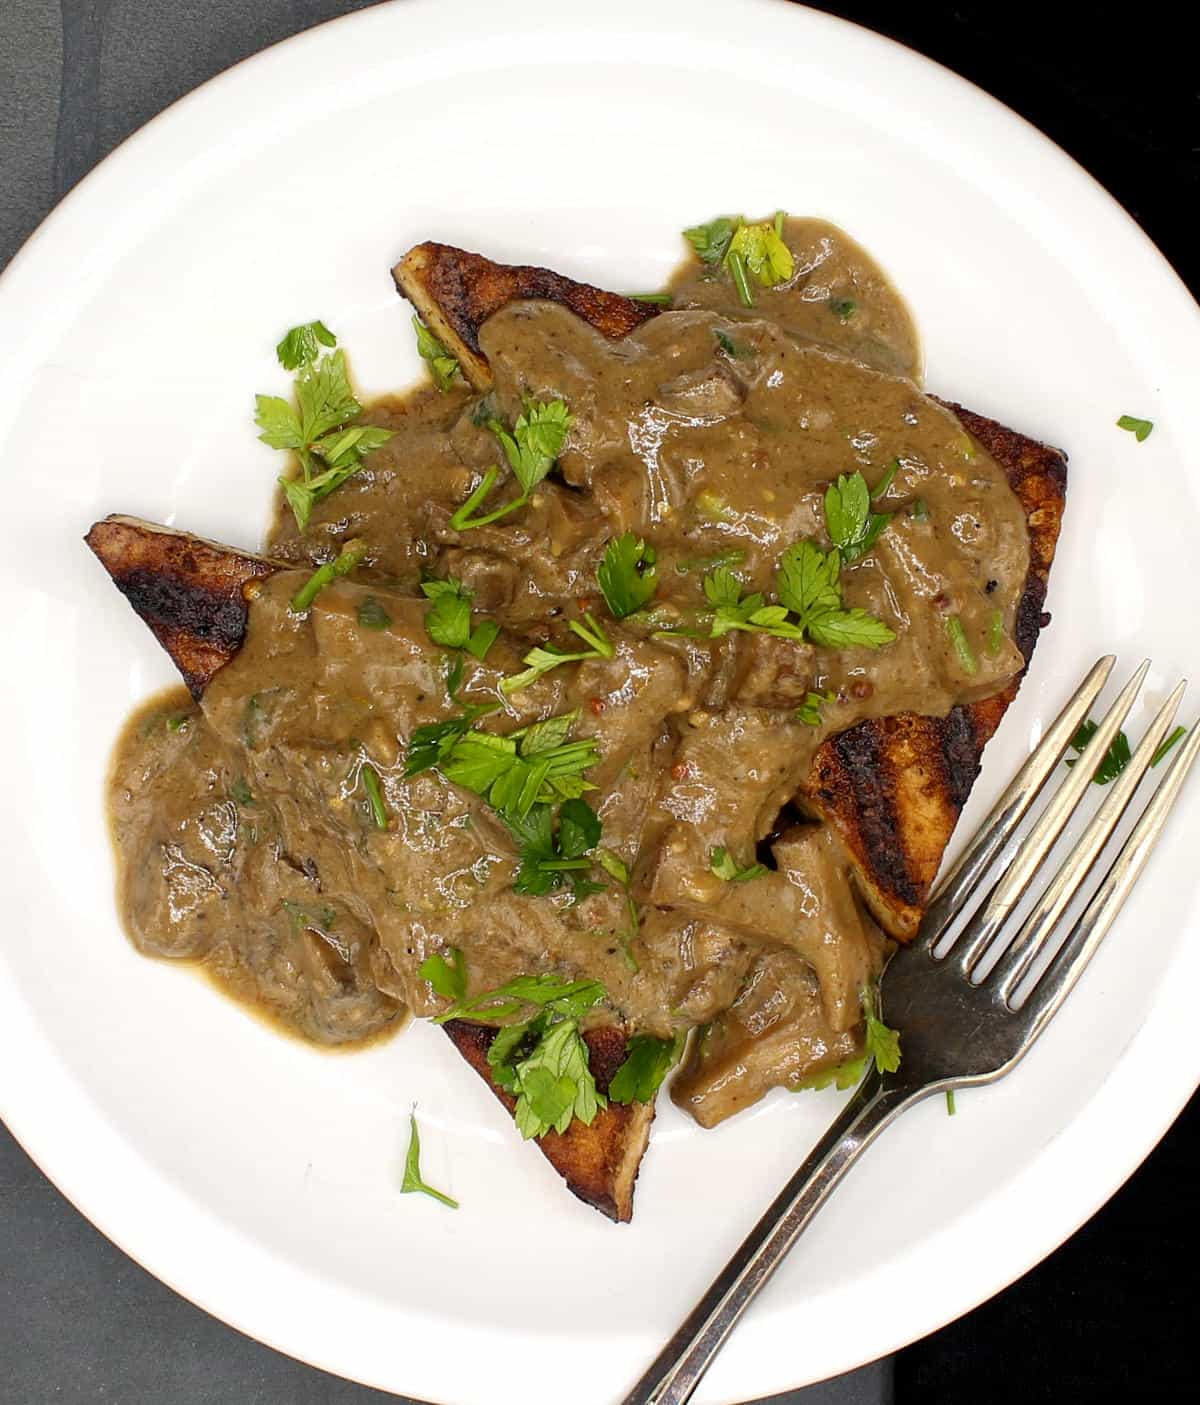 Vegan whisky steaks smothered ina  creamy mushroom sauce on white plate with a fork,